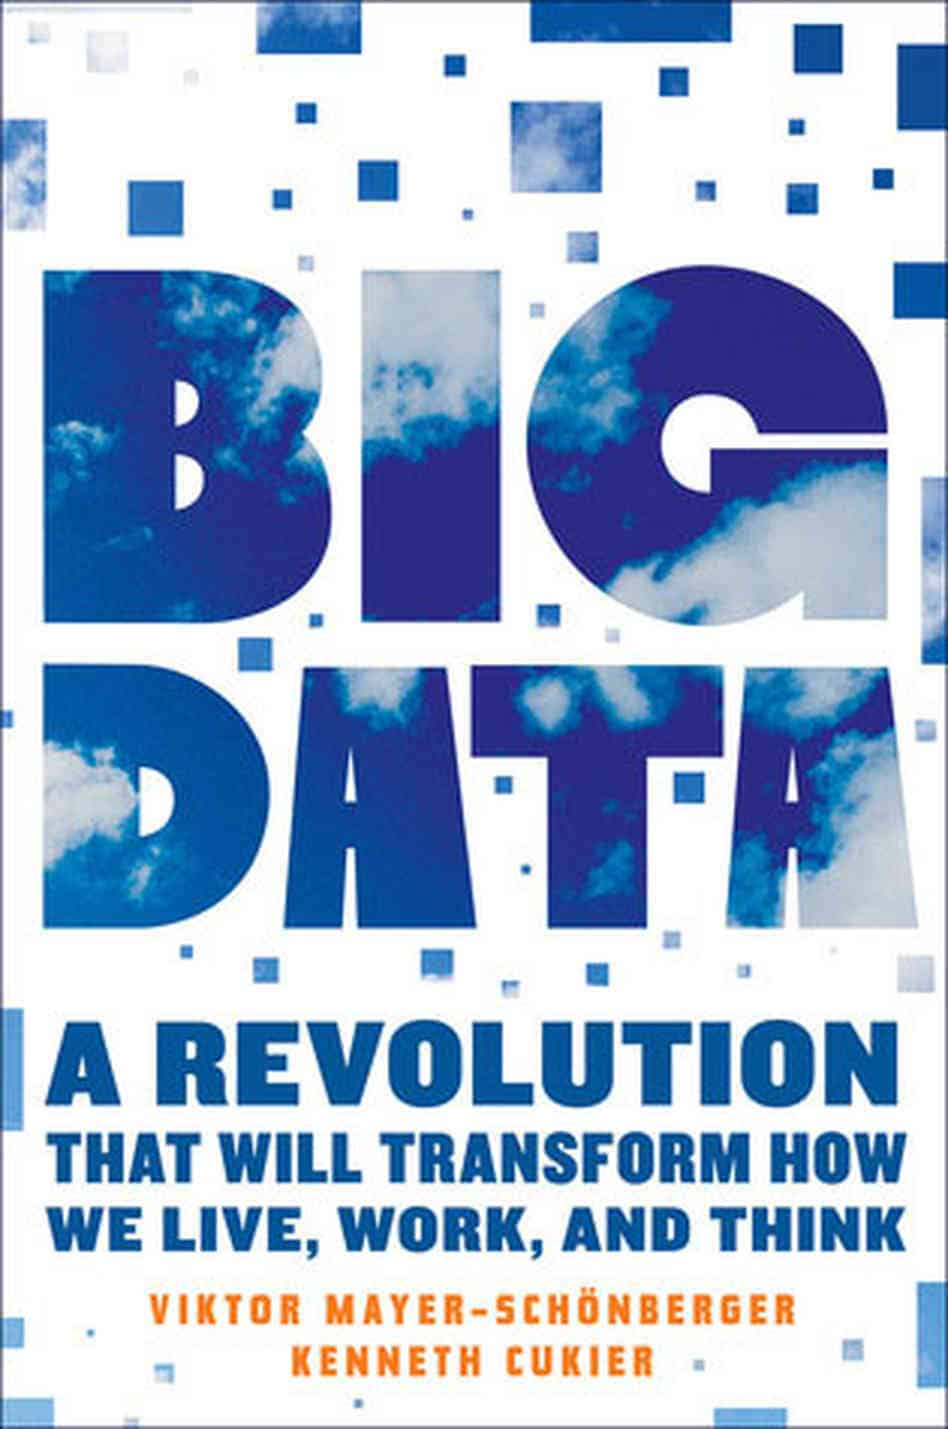 amazon Big Data: A Revolution That Will Transform How We Live, Work, and Think - Viktor Mayer reviews Big Data: A Revolution That Will Transform How We Live, Work, and Think - Viktor Mayer on amazon newest Big Data: A Revolution That Will Transform How We Live, Work, and Think - Viktor Mayer prices of Big Data: A Revolution That Will Transform How We Live, Work, and Think - Viktor Mayer Big Data: A Revolution That Will Transform How We Live, Work, and Think - Viktor Mayer deals best deals on Big Data: A Revolution That Will Transform How We Live, Work, and Think - Viktor Mayer buying a Big Data: A Revolution That Will Transform How We Live, Work, and Think - Viktor Mayer lastest Big Data: A Revolution That Will Transform How We Live, Work, and Think - Viktor Mayer what is a Big Data: A Revolution That Will Transform How We Live, Work, and Think - Viktor Mayer Big Data: A Revolution That Will Transform How We Live, Work, and Think - Viktor Mayer at amazon where to buy Big Data: A Revolution That Will Transform How We Live, Work, and Think - Viktor Mayer where can i you get a Big Data: A Revolution That Will Transform How We Live, Work, and Think - Viktor Mayer online purchase Big Data: A Revolution That Will Transform How We Live, Work, and Think - Viktor Mayer sale off discount cheapest Big Data: A Revolution That Will Transform How We Live, Work, and Think - Viktor Mayer  Big Data: A Revolution That Will Transform How We Live, Work, and Think - Viktor Mayer for sale arihant general science book pdf agricultural science book 2 answers of ncert science book class 8 answers for science book asapscience book a level computer science book pdf ancient science book kenshi activate science book 1 pdf as computer science book an introduction to computer science book ba 1st year political science book download ba 2nd year political science book bse odisha 9th class science book download btc 2nd semester science book pdf btc science book btc 2nd semester science book basic en